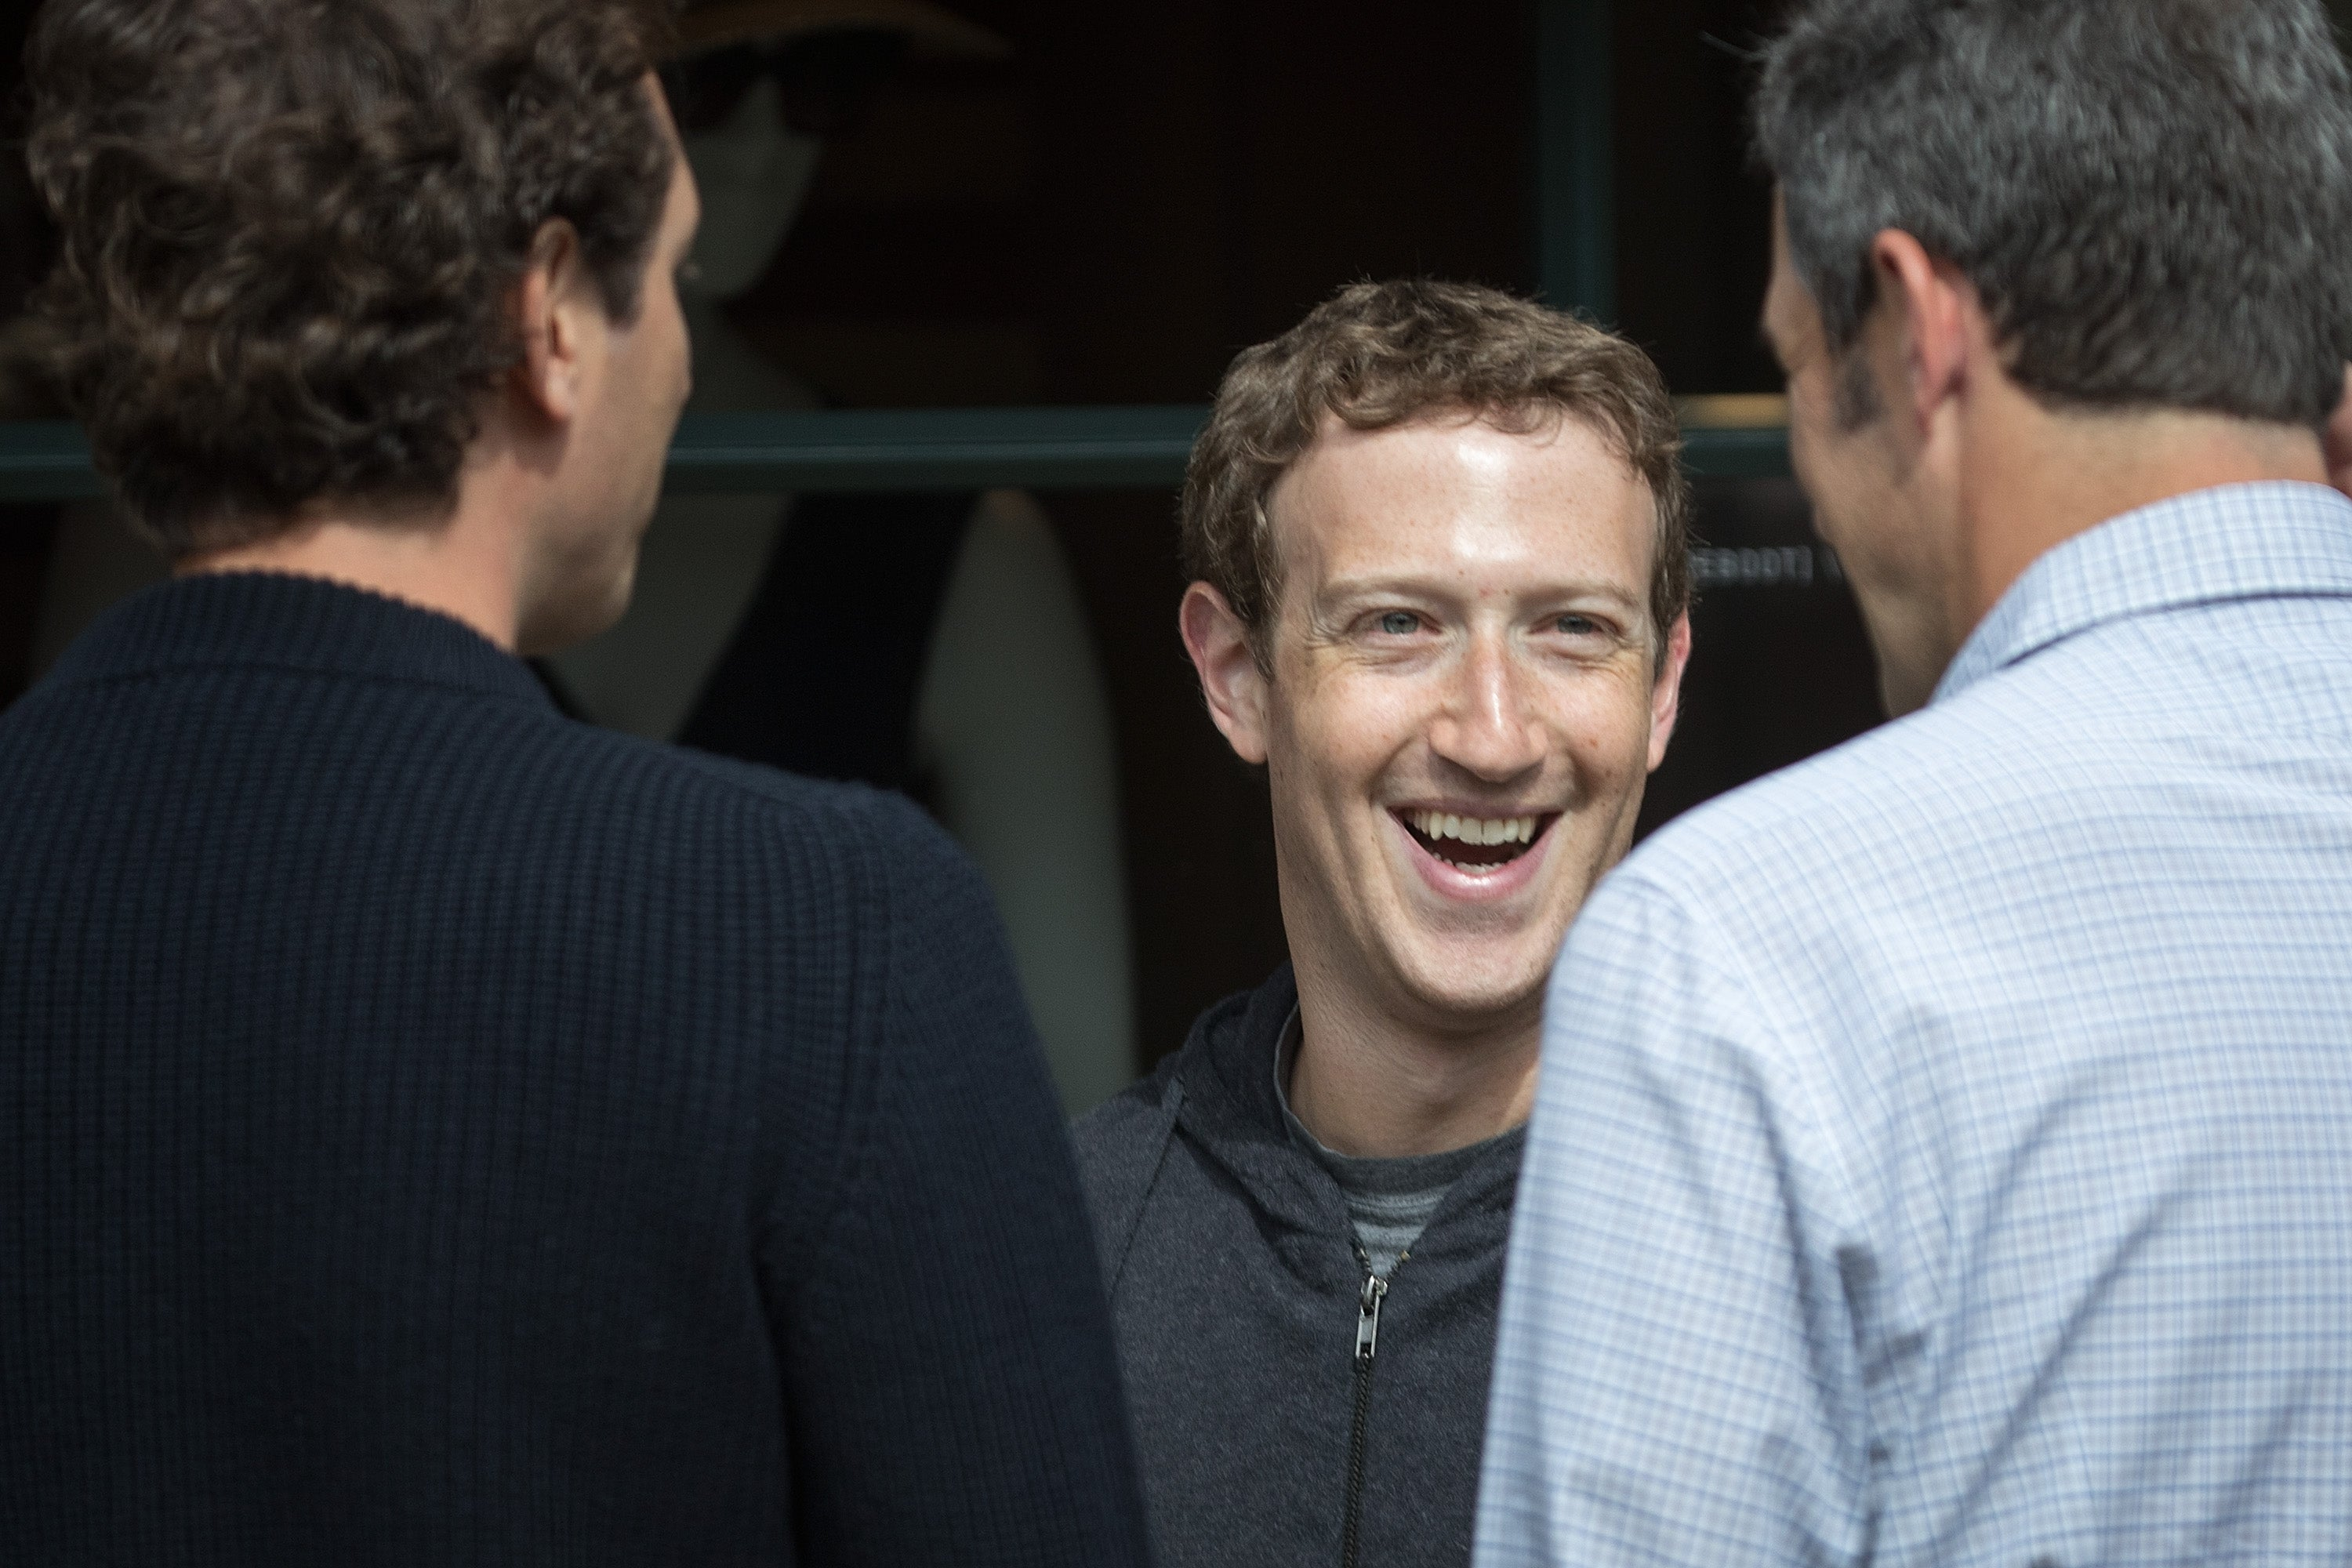 This Is Why You Didn't See A Photo Of Mark Zuckerberg At Court This Week